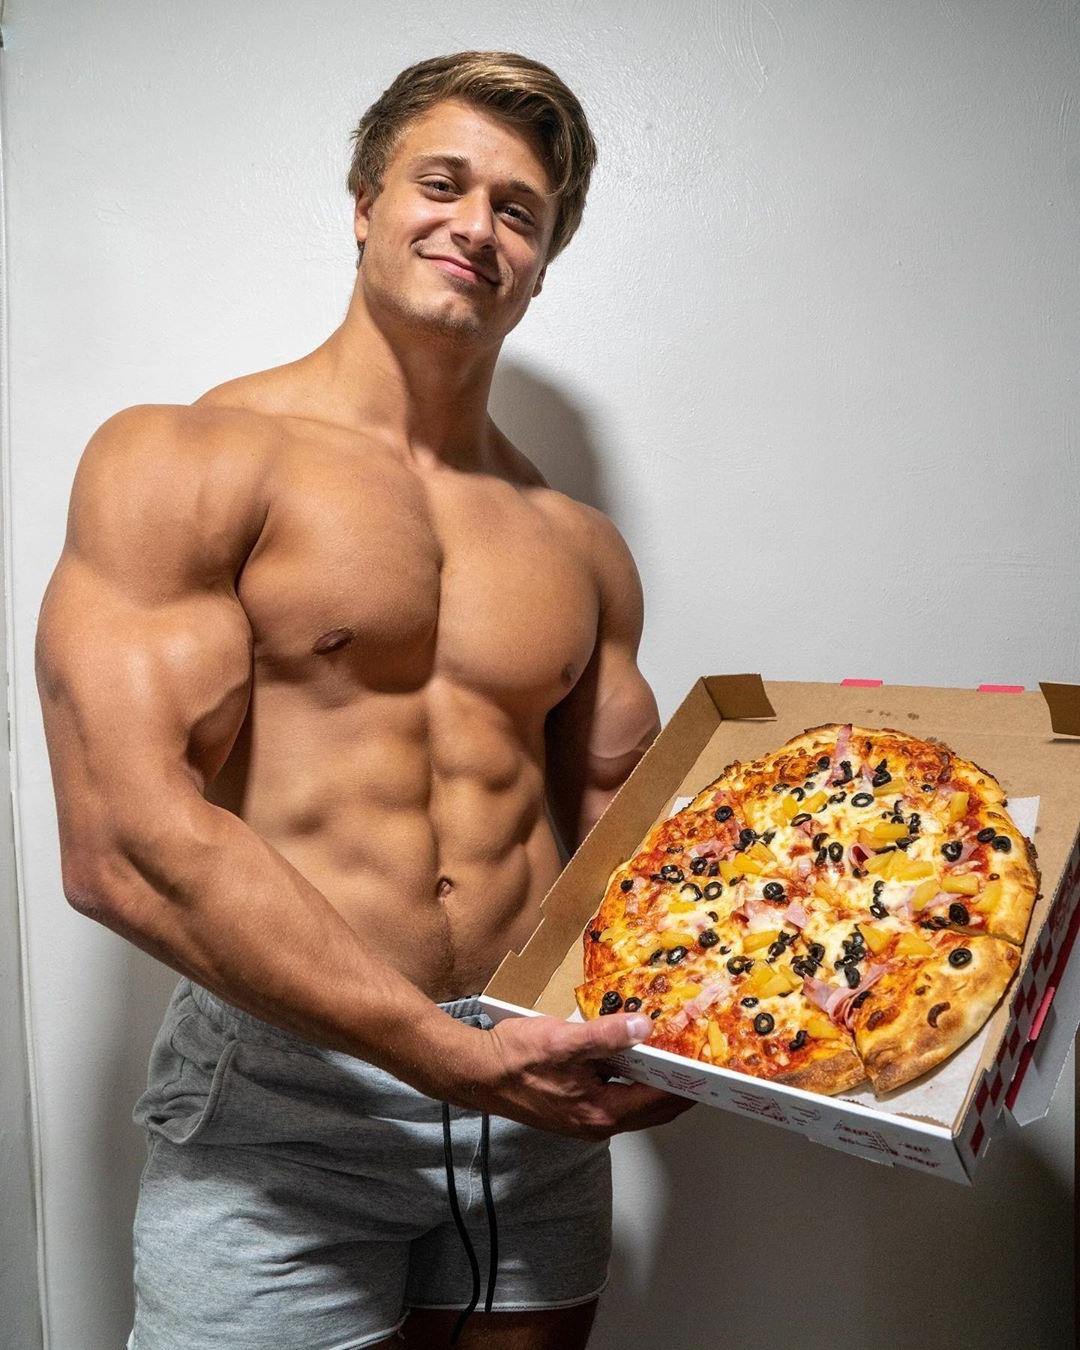 hot-muscular-biceps-blond-dude-smiling-pizza